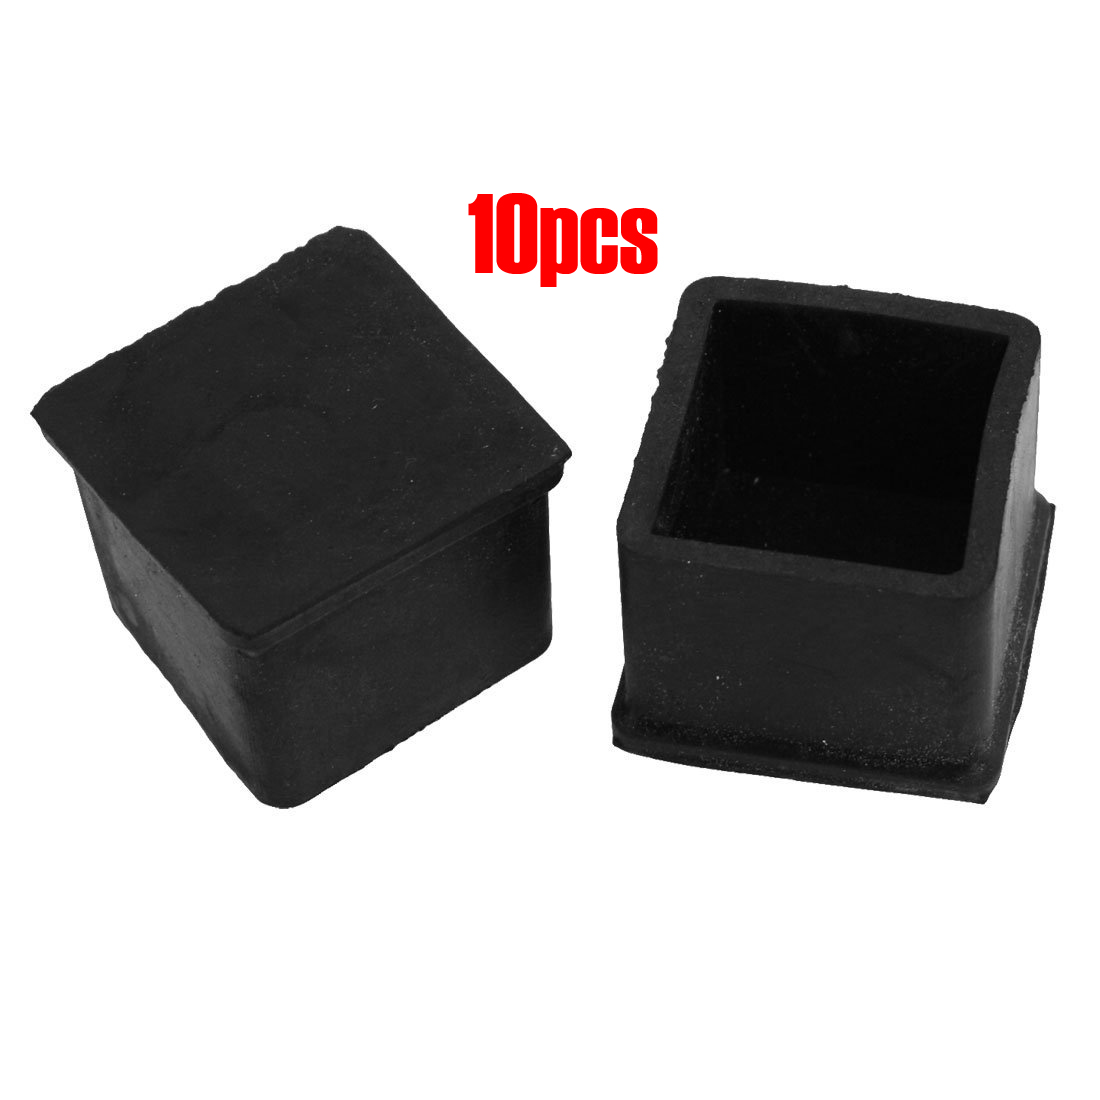 FJS!10 Pcs Black 30mm x 30mm Furniture Foot Protector Square Rubber Covers case rubber round table foot cover protector 8mm inner dia 24 pcs